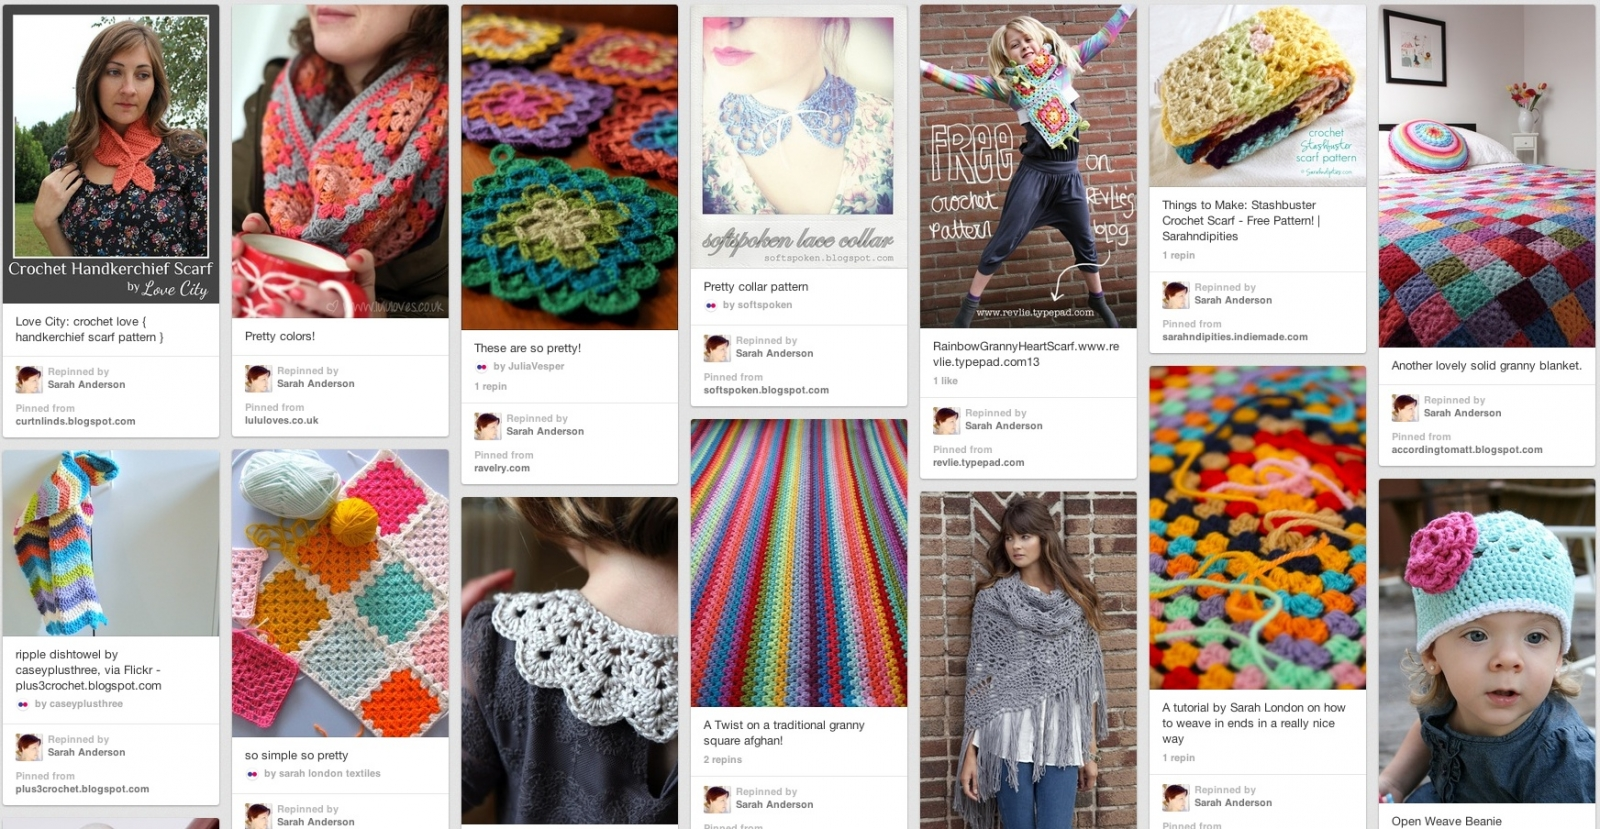 Https Sarahndipities Indiemade Com Blog Pinterest Inspiration Crochet Love